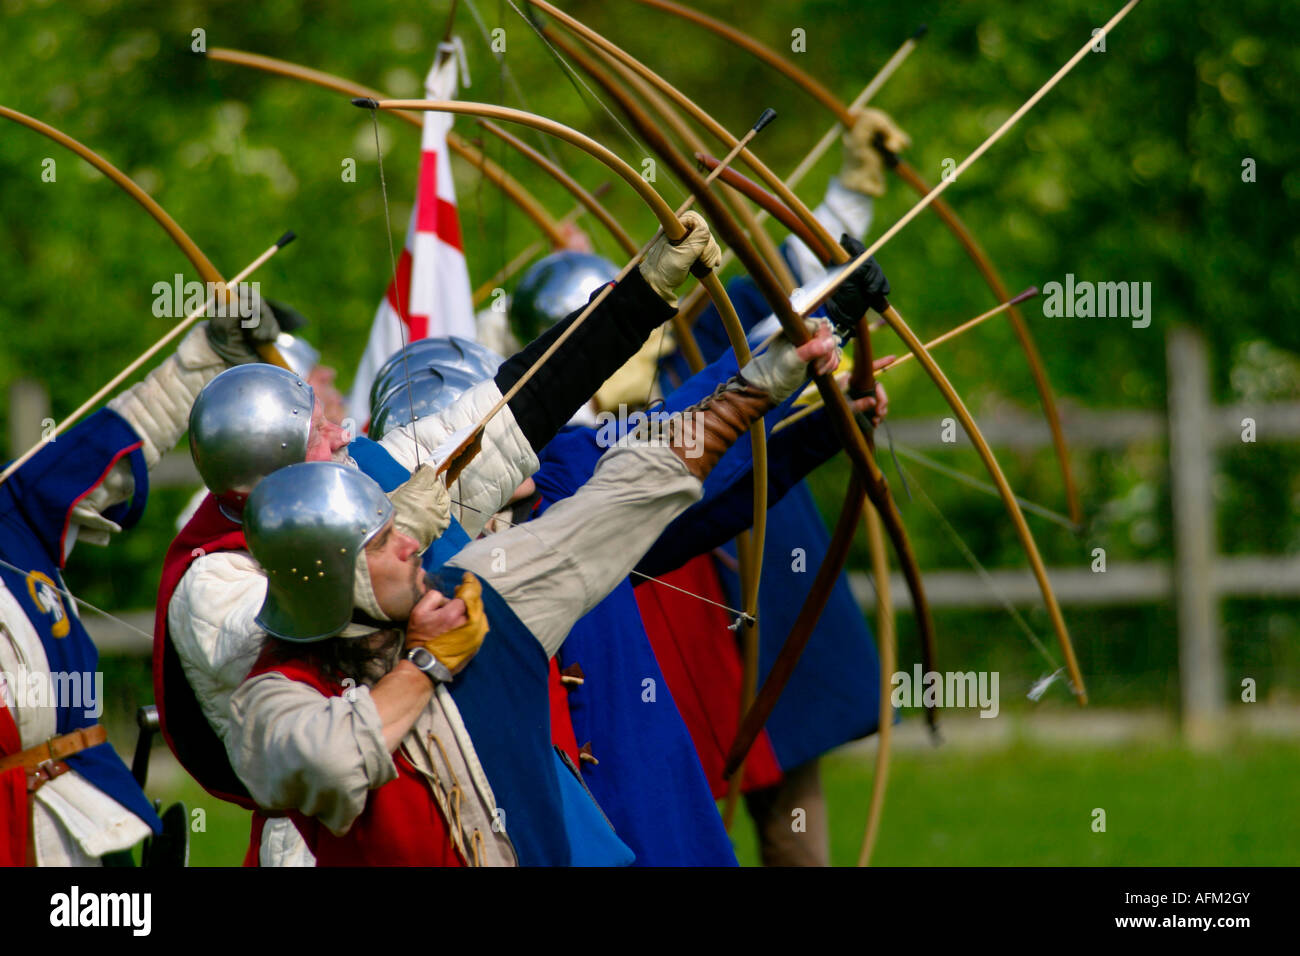 archers volley fire - Rufford Abbey Country Park living history weekend medieval life archery and combat 1472 infantry - Stock Image